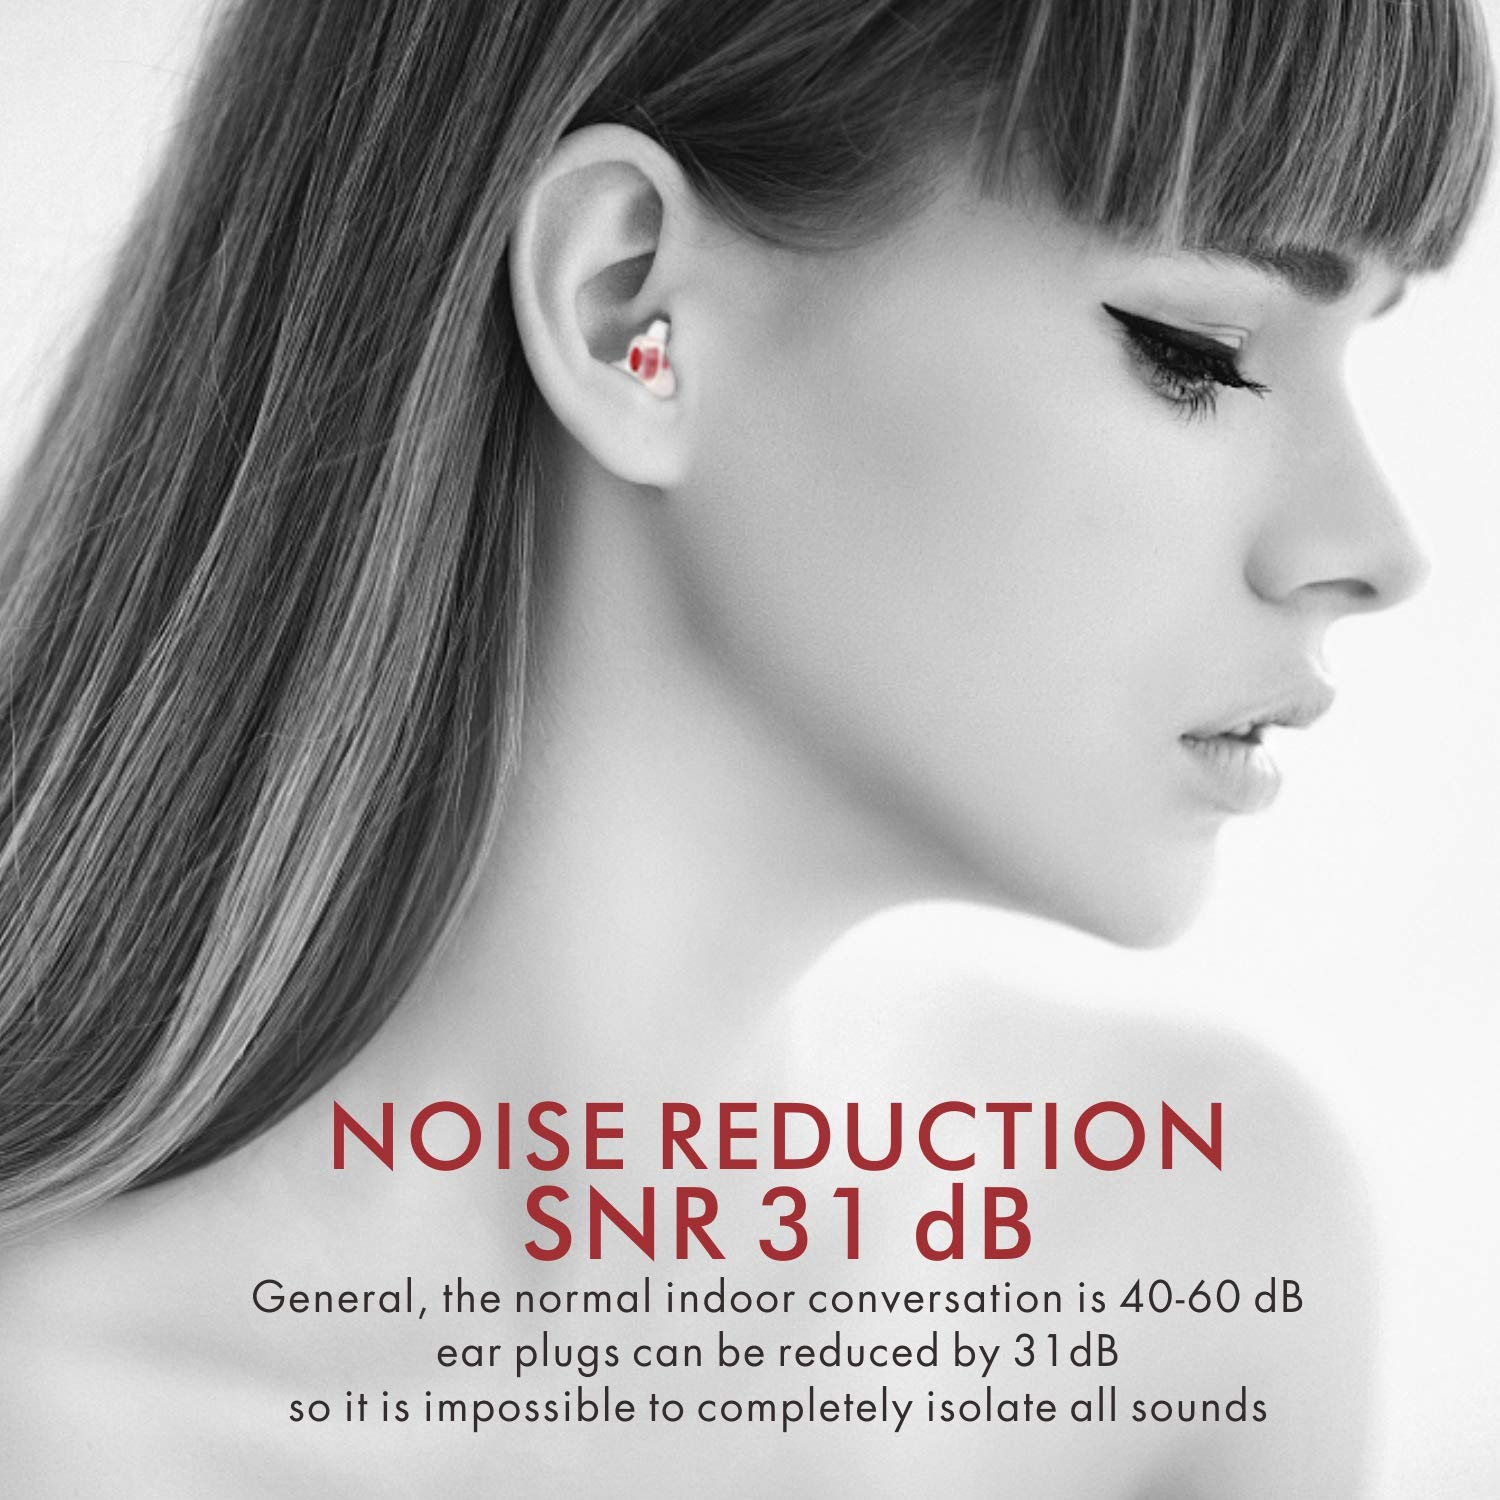 Ear Plugs for Sleeping, Softvox Noise Reduction Sleeping Ear Plugs-Upgraded Filter(SNR31dB)-Reusable Ear Plugs for Snorning,Work,Office,Airplane Travel,Gardening by softvox (Image #8)